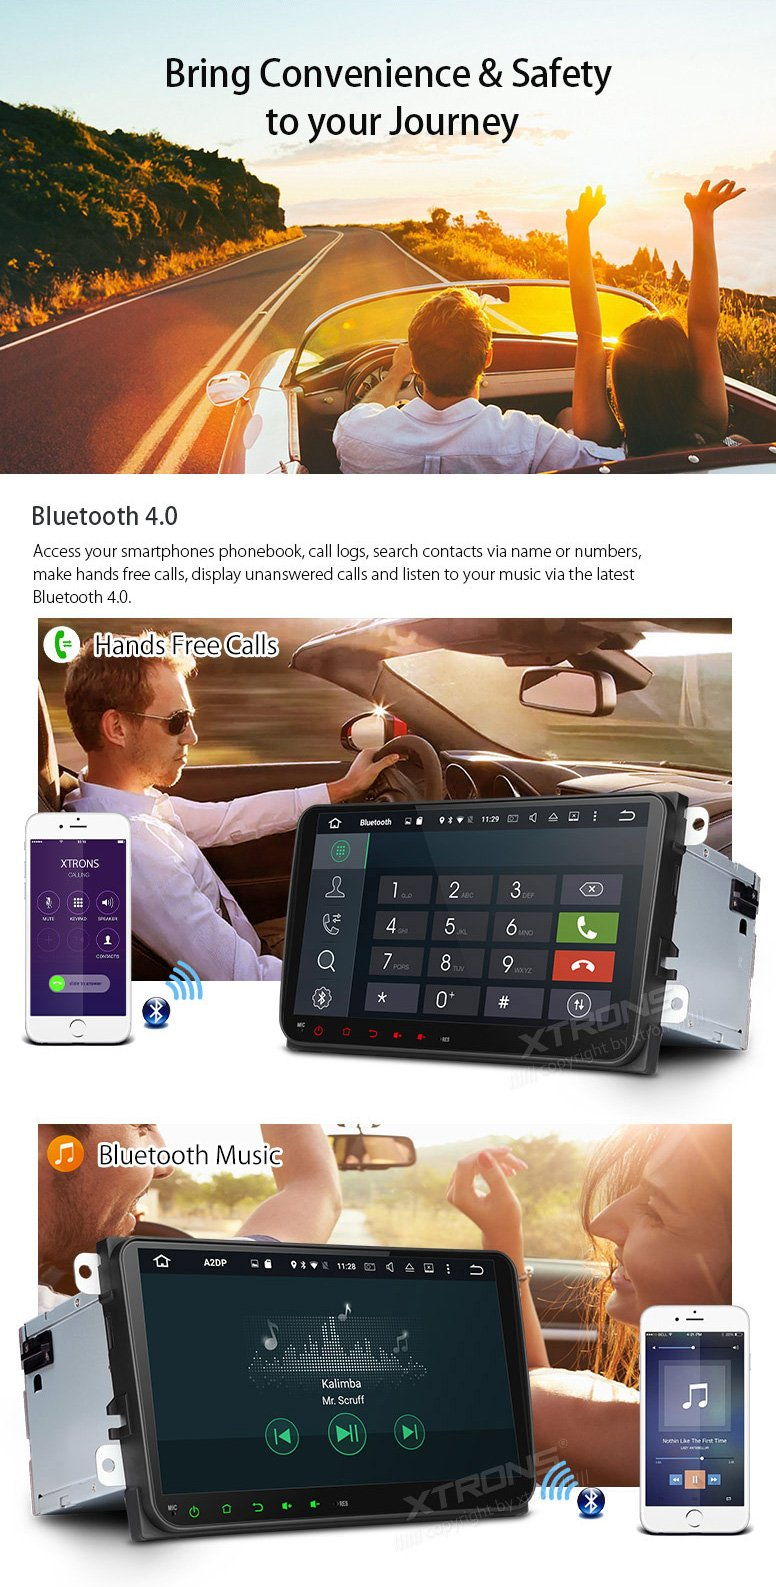 XTRONS Android 6.0 Octa-Core 9 Inch Capacitive Touch Screen Car Stereo Radio DVD Player Screen Mirroring Function OBD2 Tire Pressure Monitoring for VW Caddy Golf 2003-2013 Reversing Camera Included by XTRONS (Image #6)